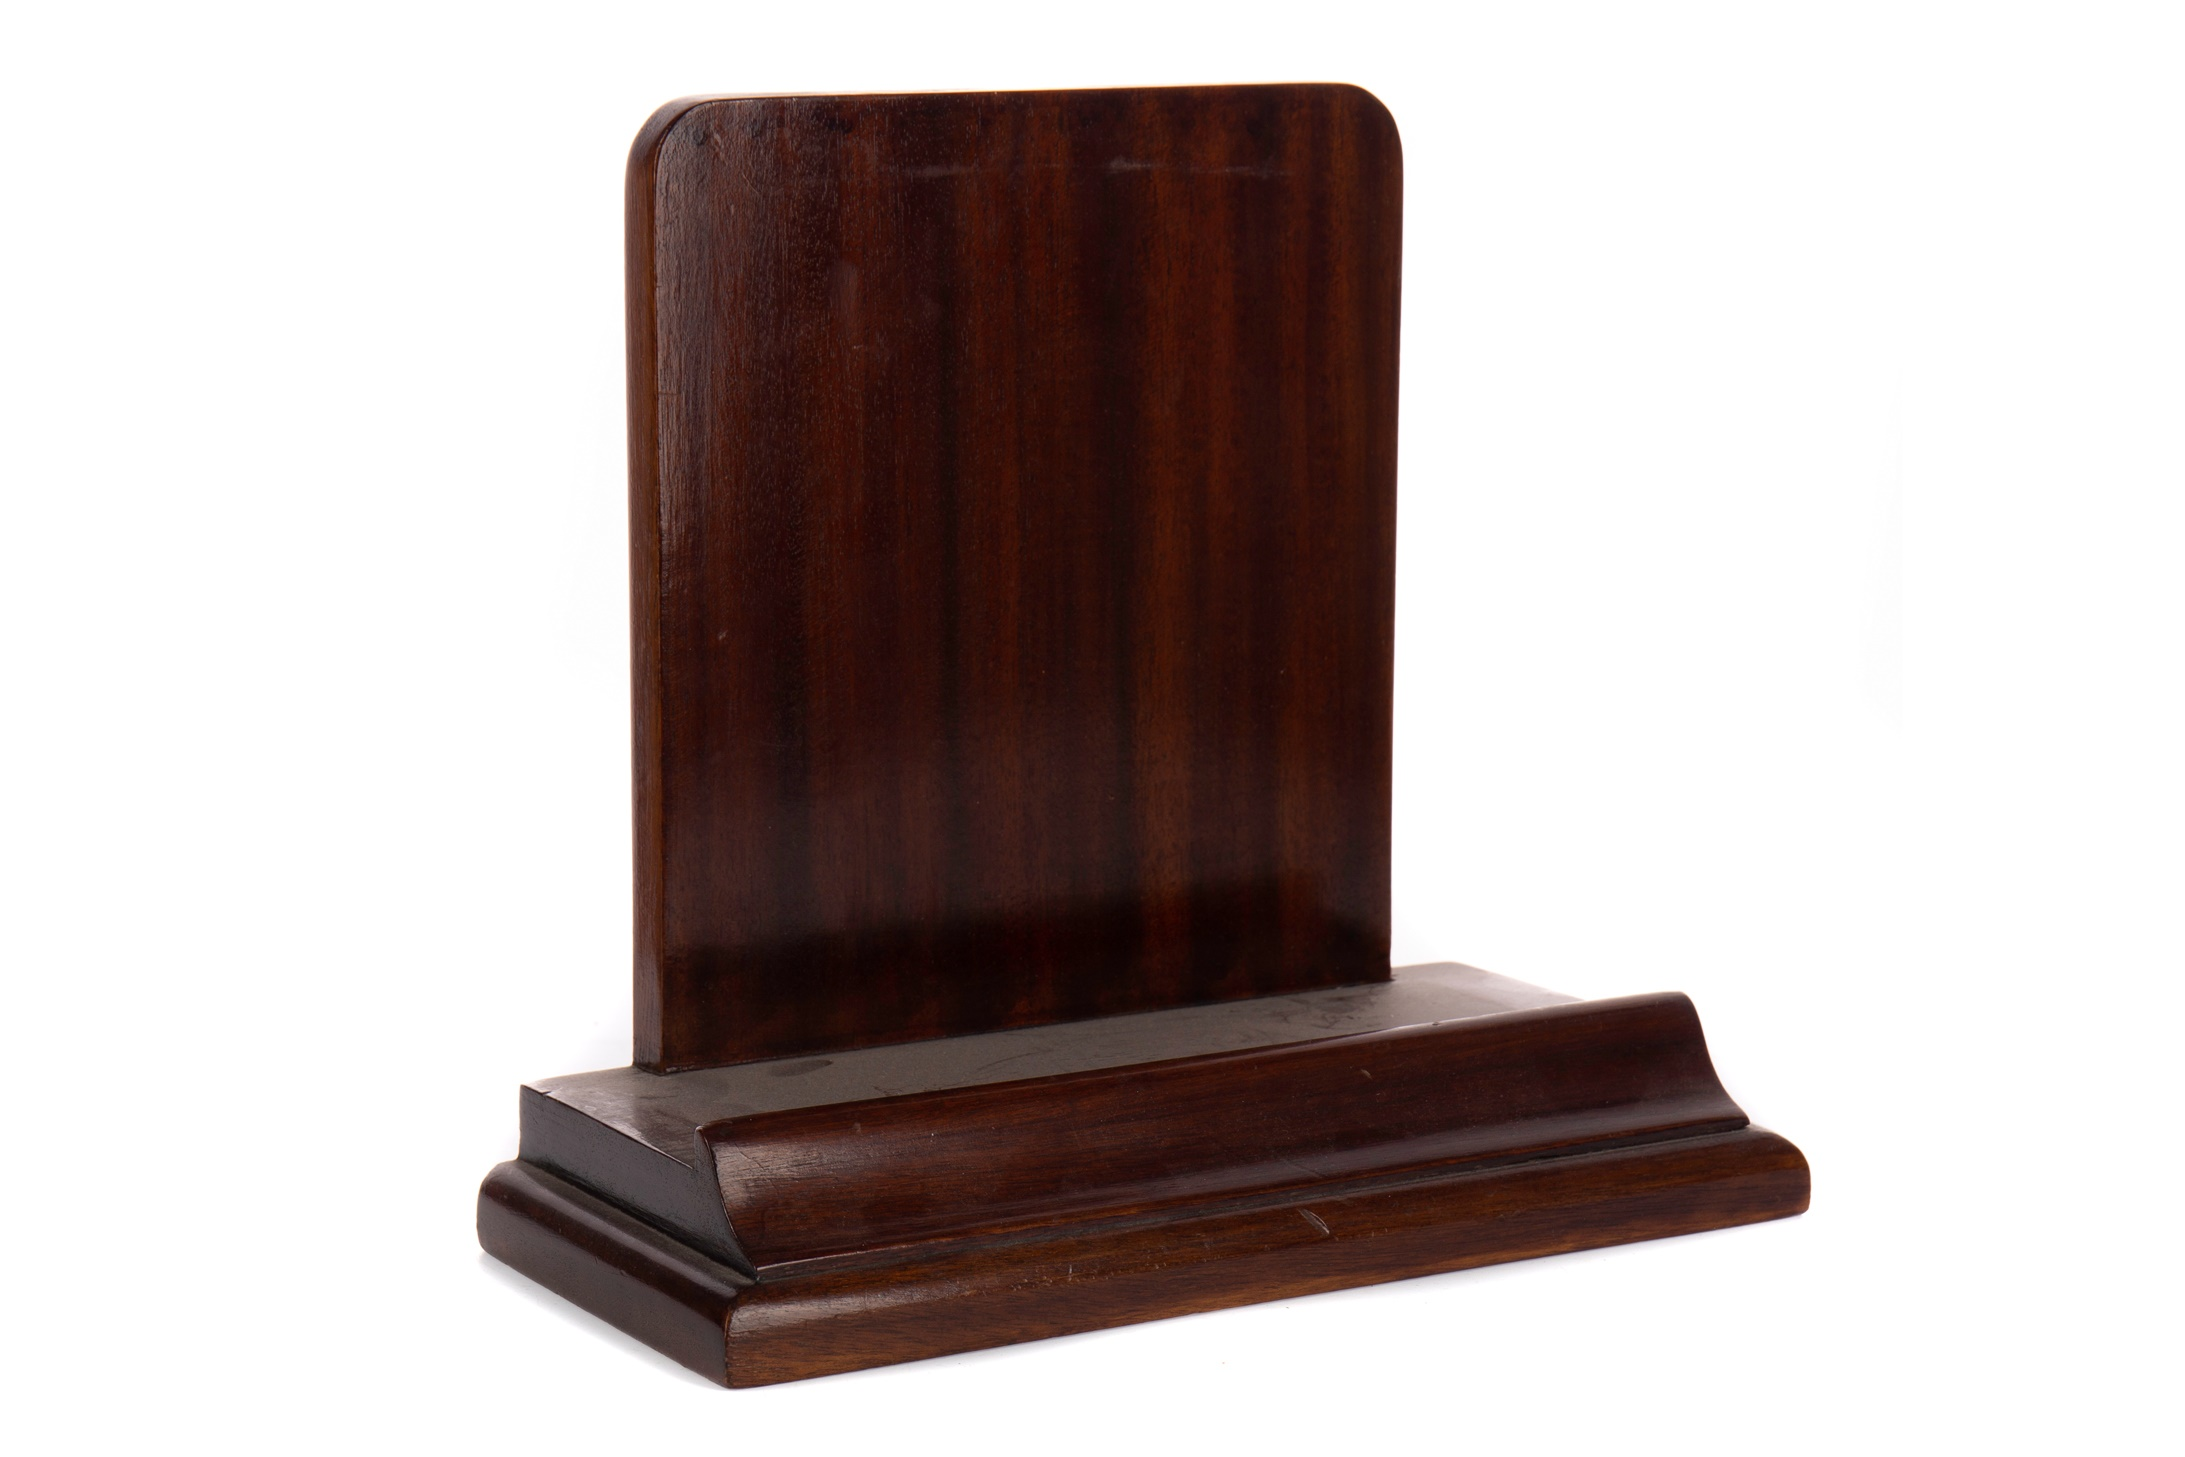 A MID-20TH CENTURY CHINESE MAHOGANY PLATE STAND